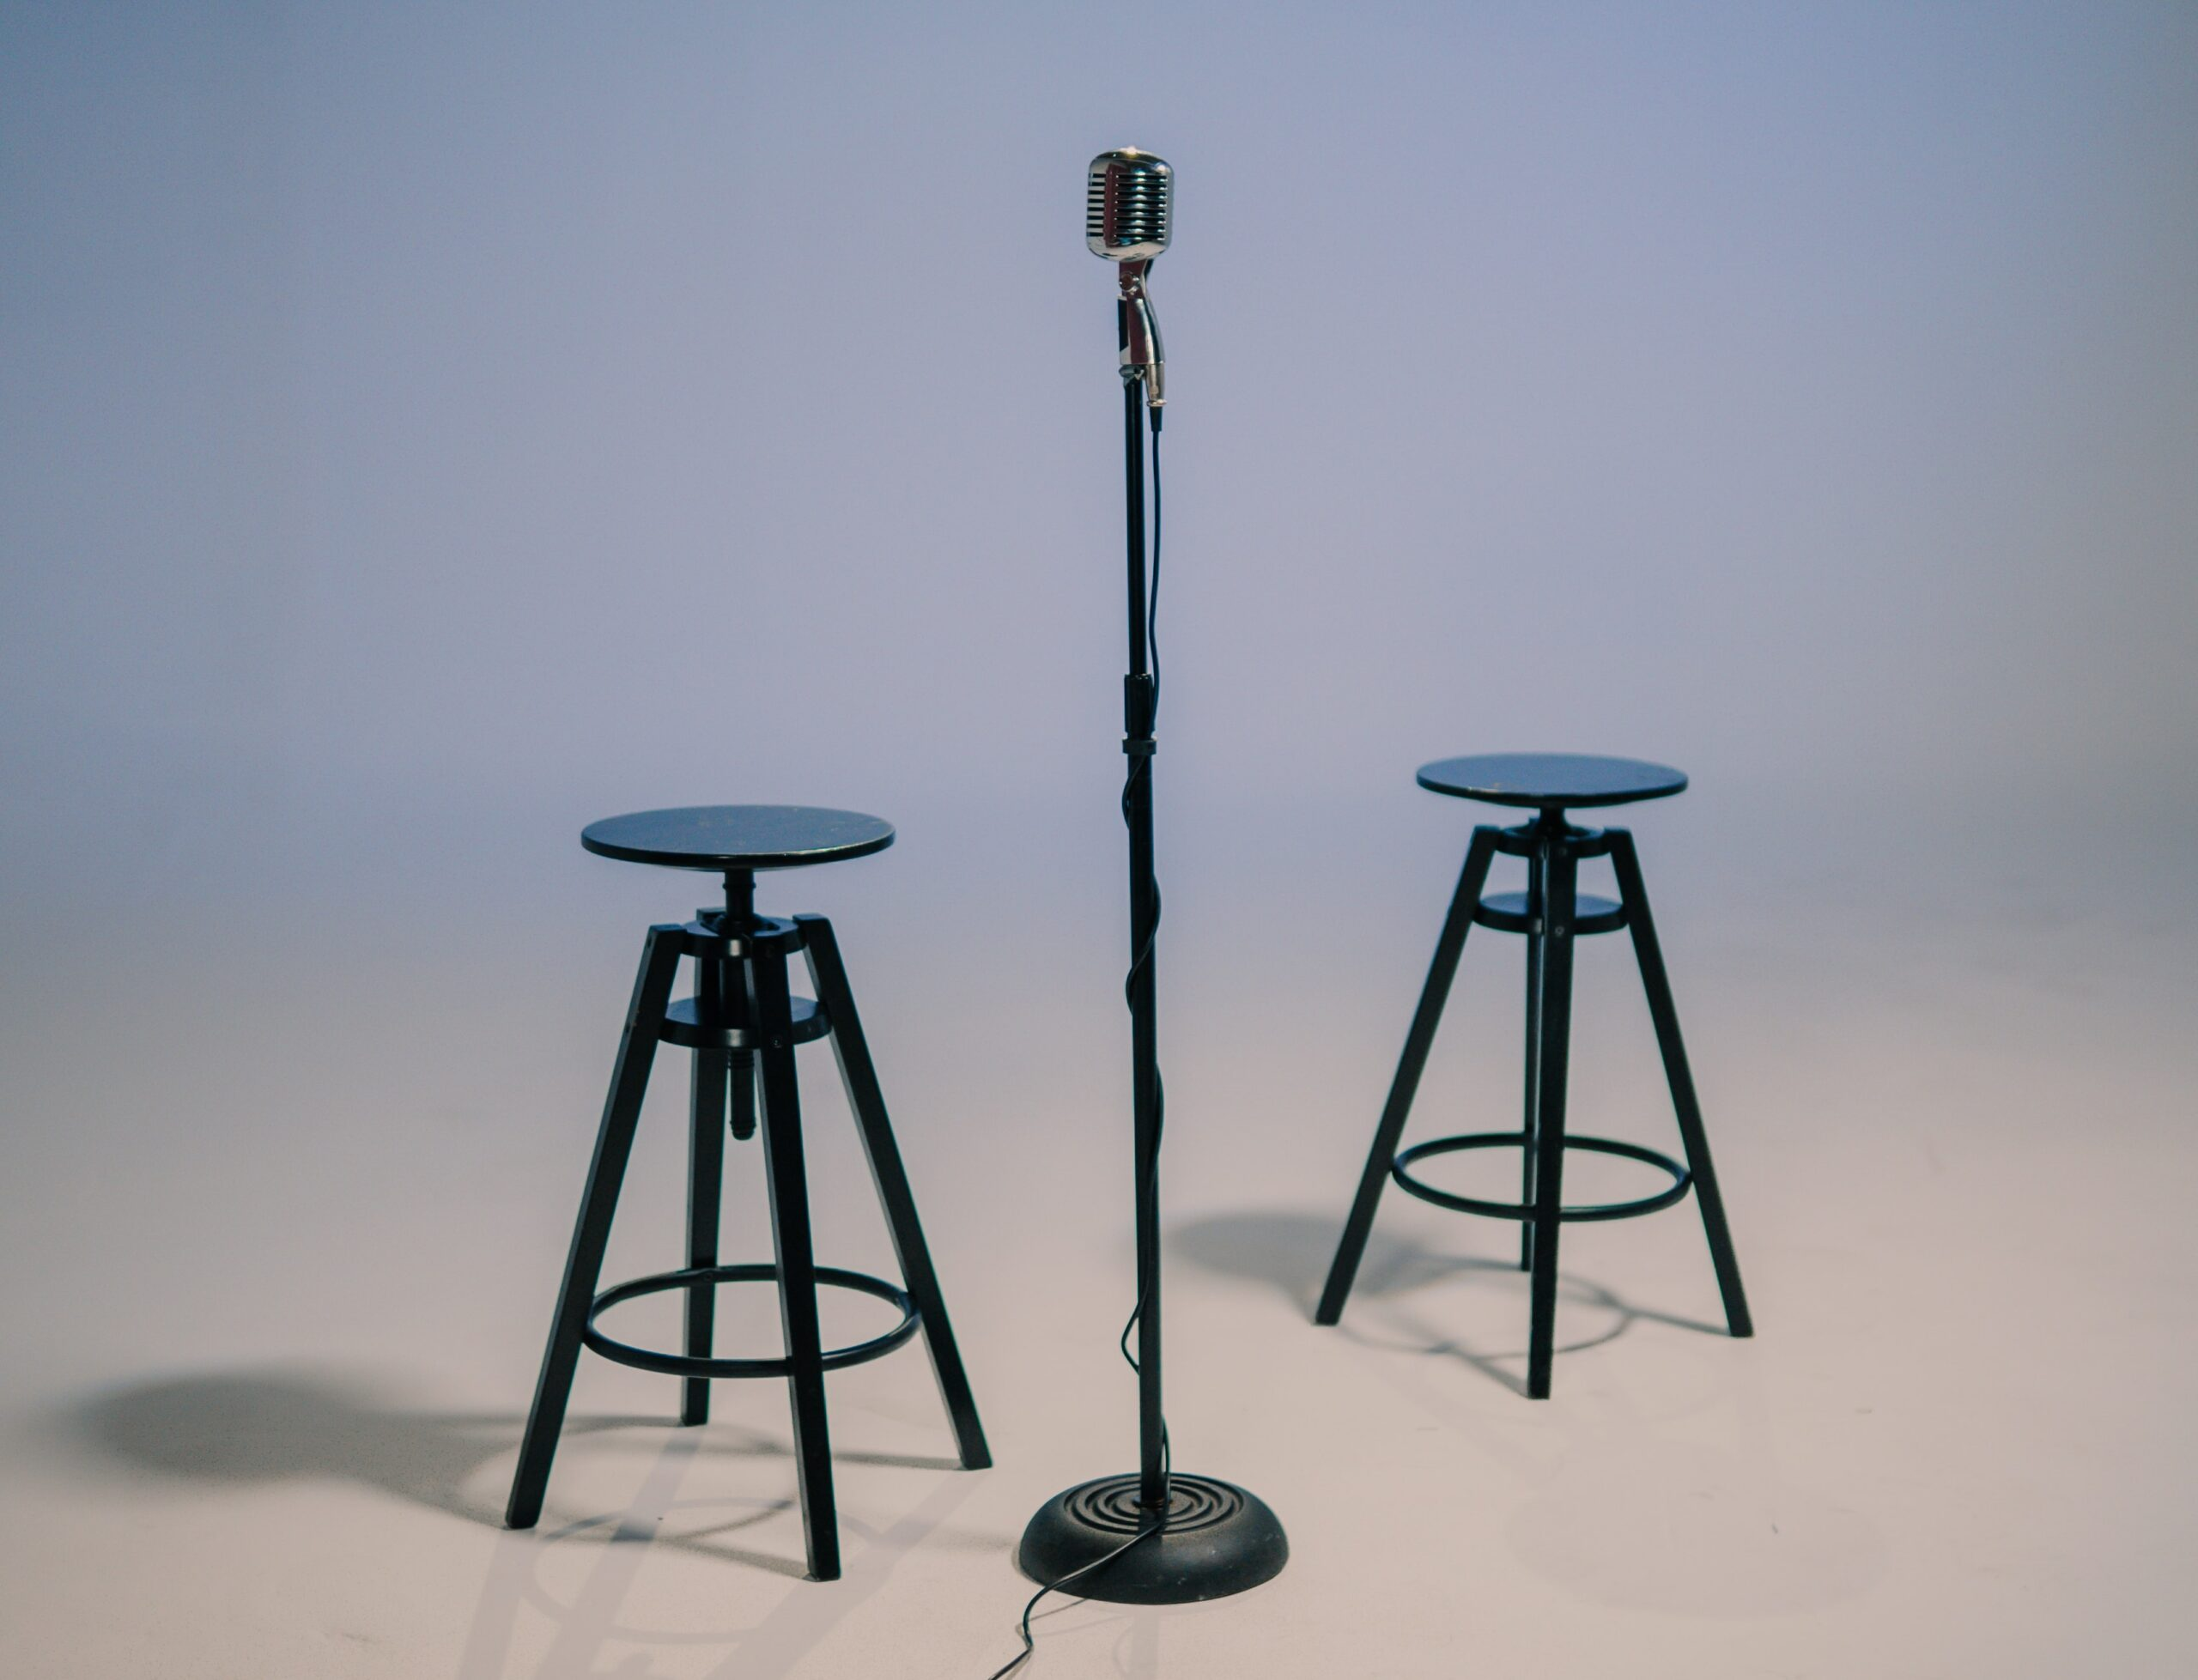 two chairs in front of a microphone